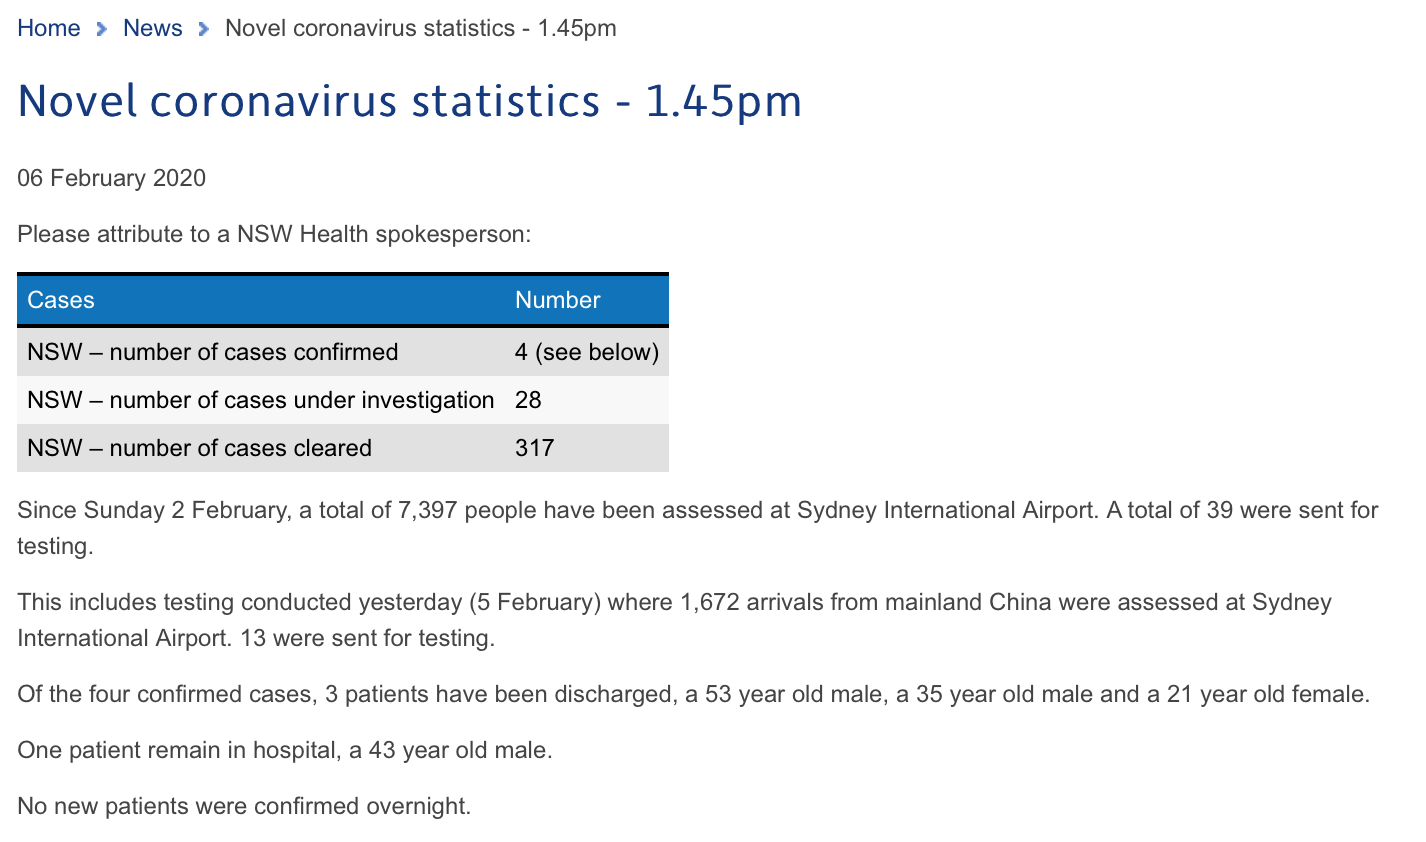 Tim Churches Health Data Science Blog Analysing Covid 19 2019 Ncov Outbreak Data With R Part 1